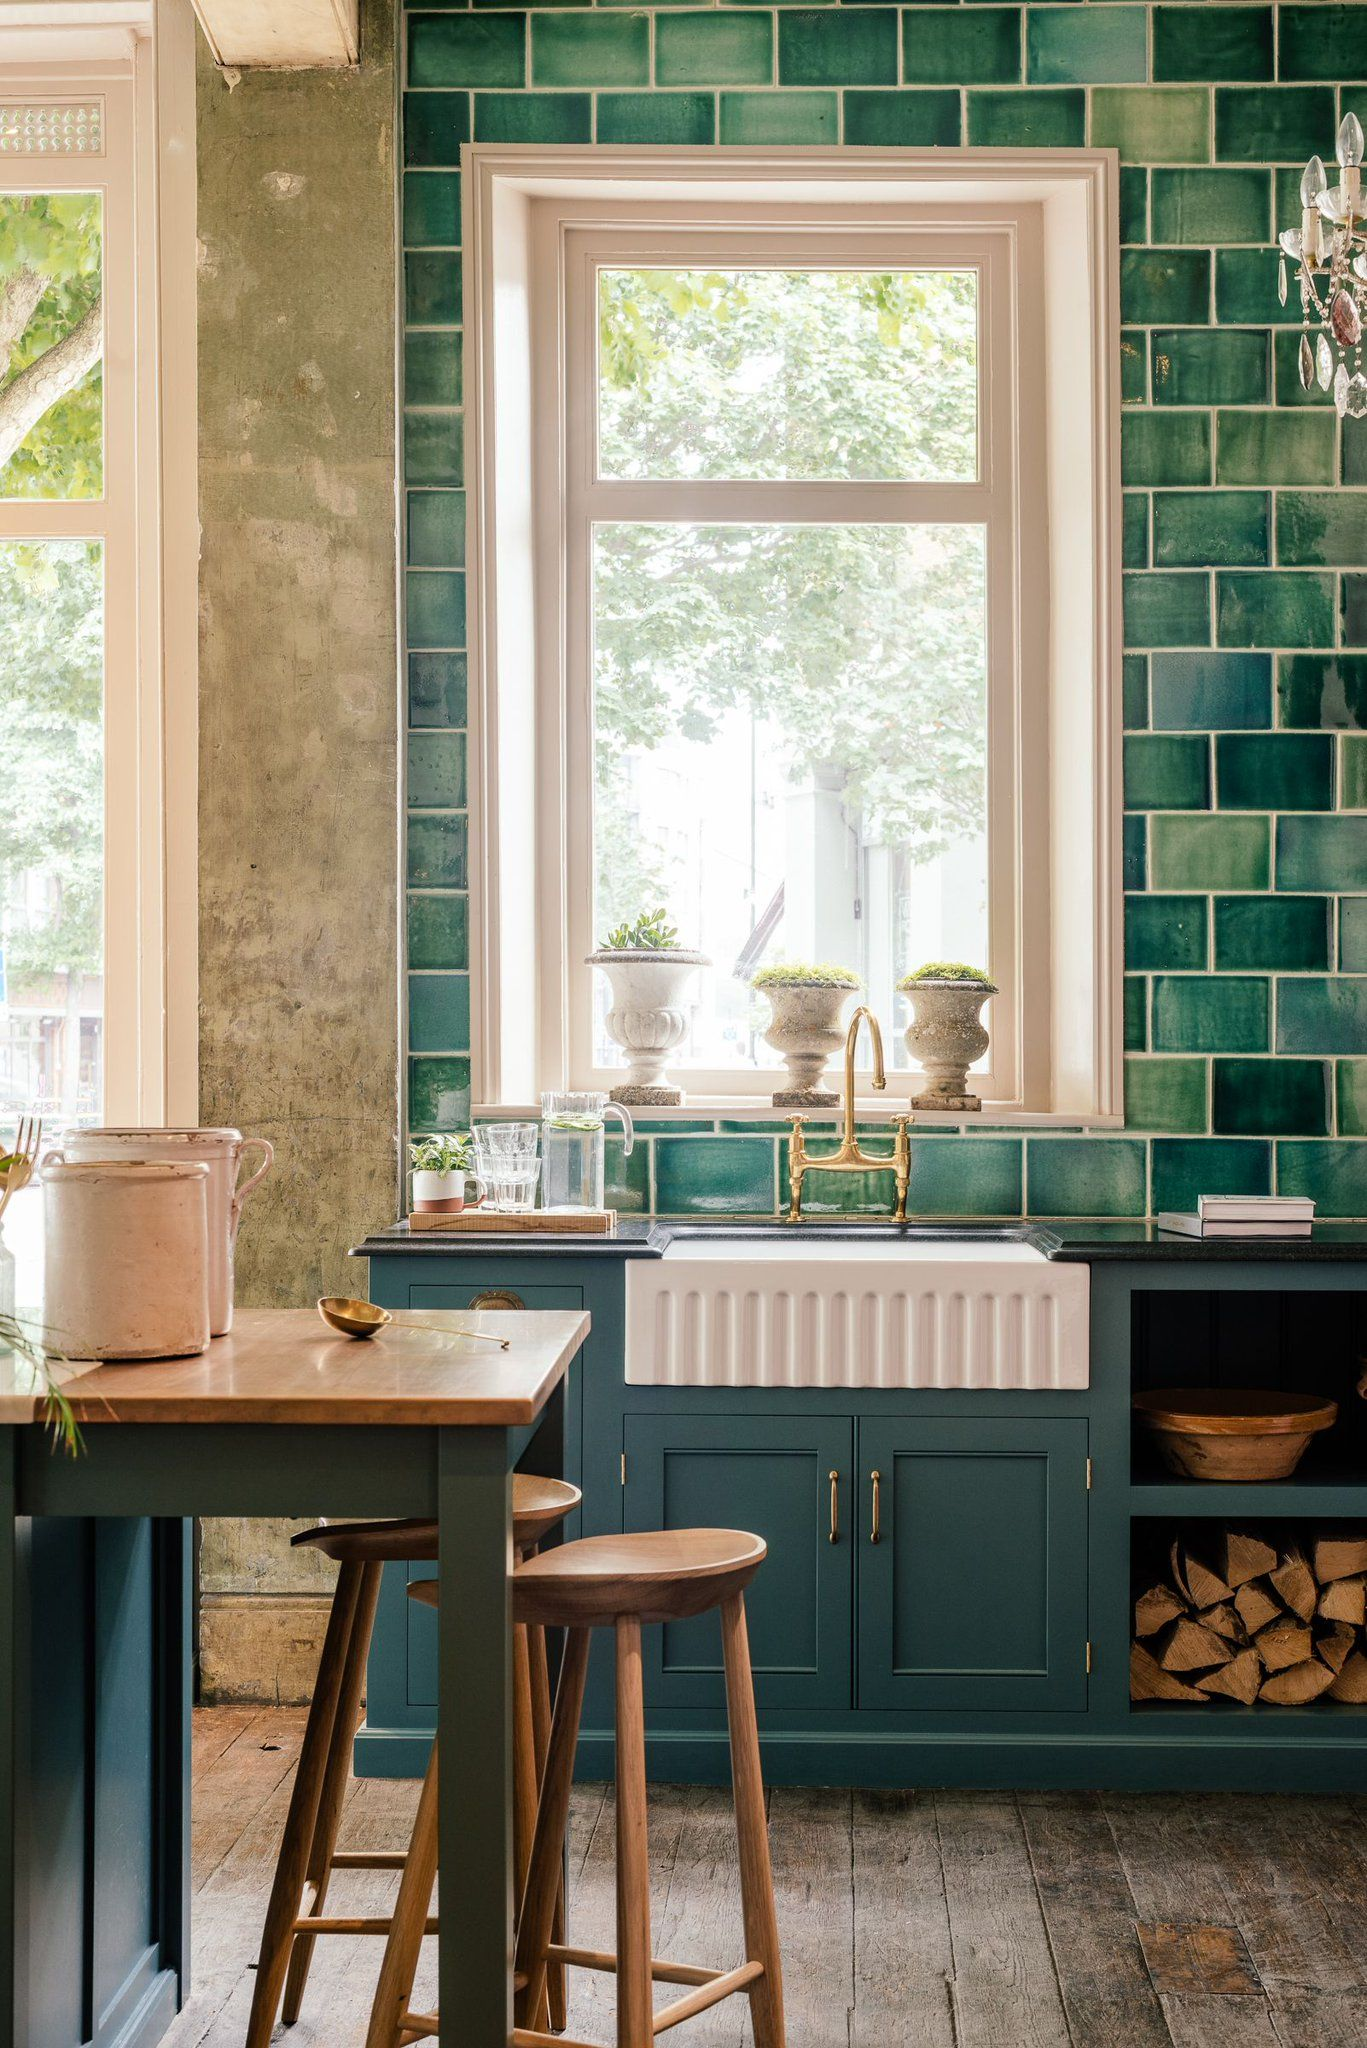 Period Living on (With images) | Dark green kitchen, Green ...